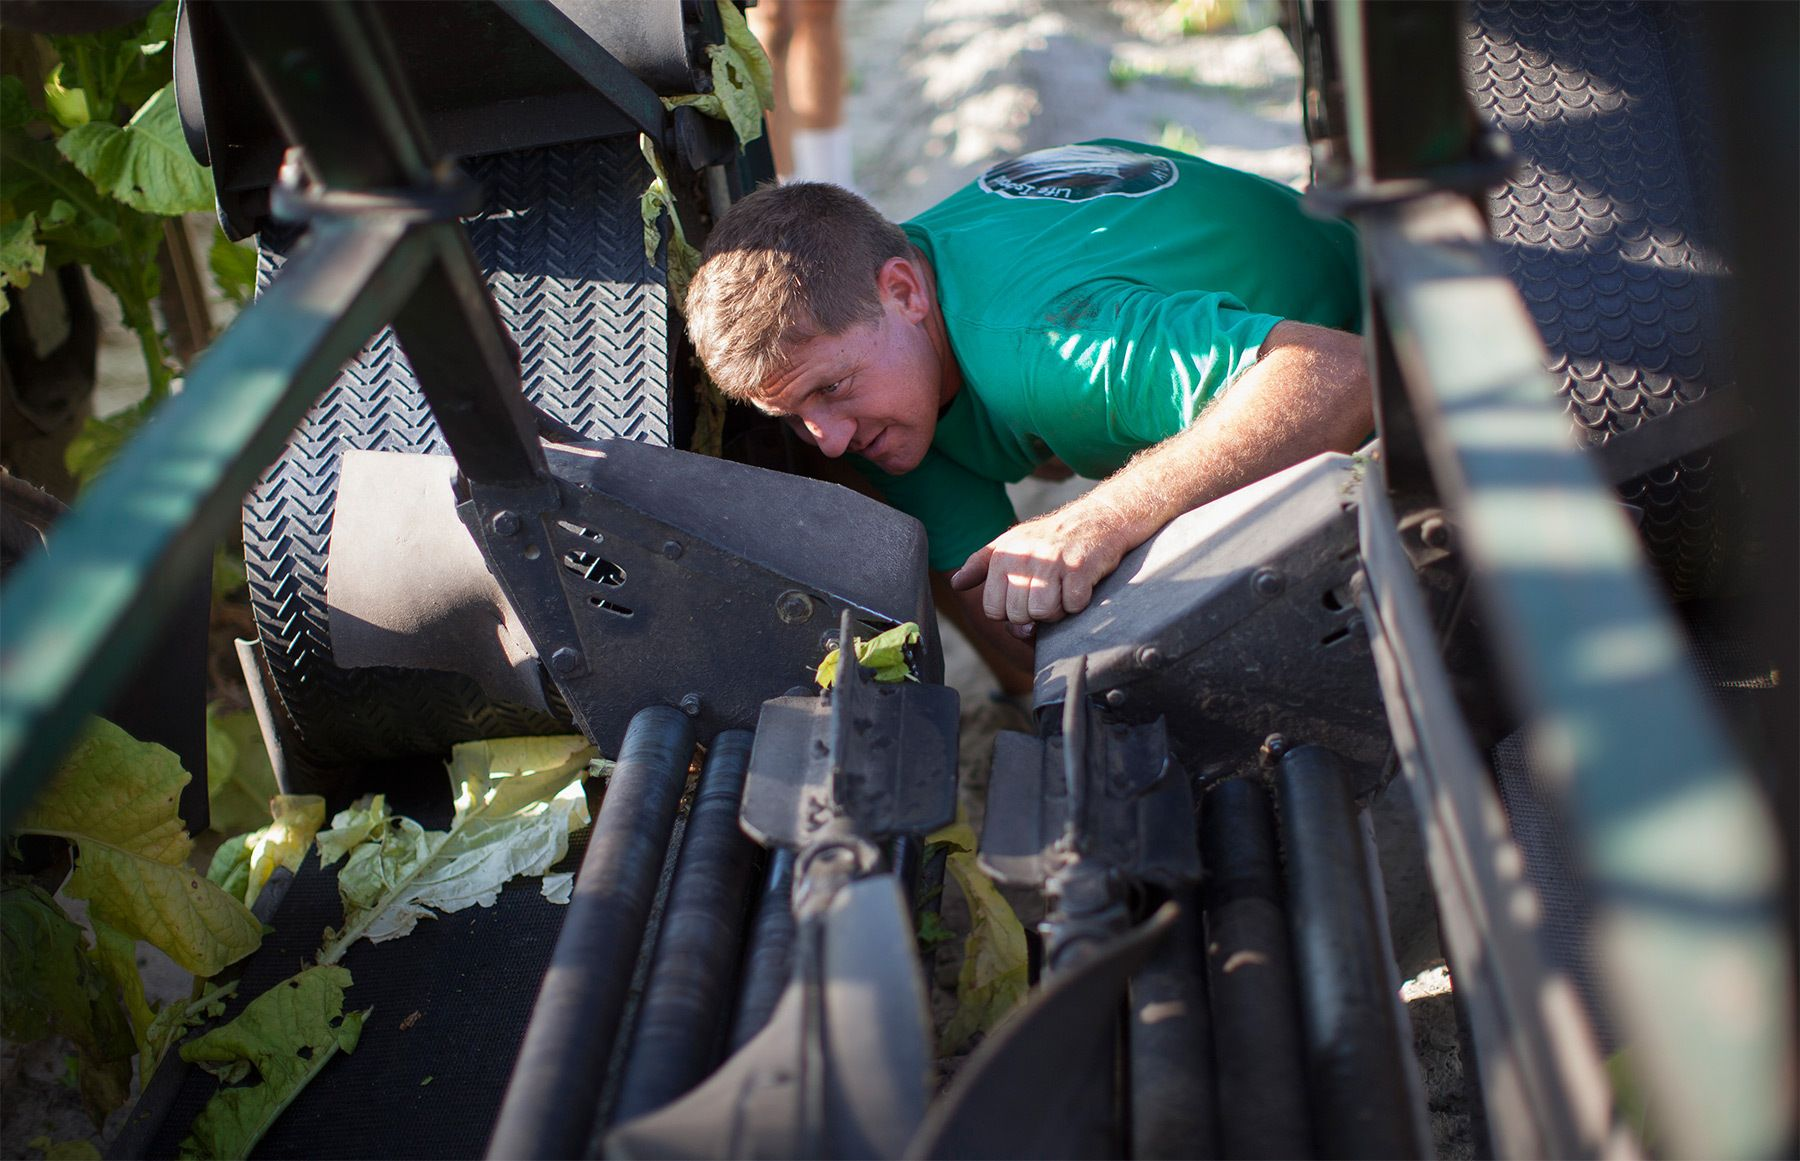 Fourth generation farmer Cam Shelly works to repair a tobacco harvester at Shelly Farms in the Pleasant View community of Horry County, South Carolina July 26, 2013. The traditional tobacco harvest requires many labor intensive hours to bring the crop to market, especially with the flue-cured variety prominent in the southern United States. With the growing health concerns with smoking in the US, most farmers use market cooperatives to sell their crop to the growing markets in China.     Picture taken on July 26, 2013.   REUTERS/Randall Hill (UNITED STATES)